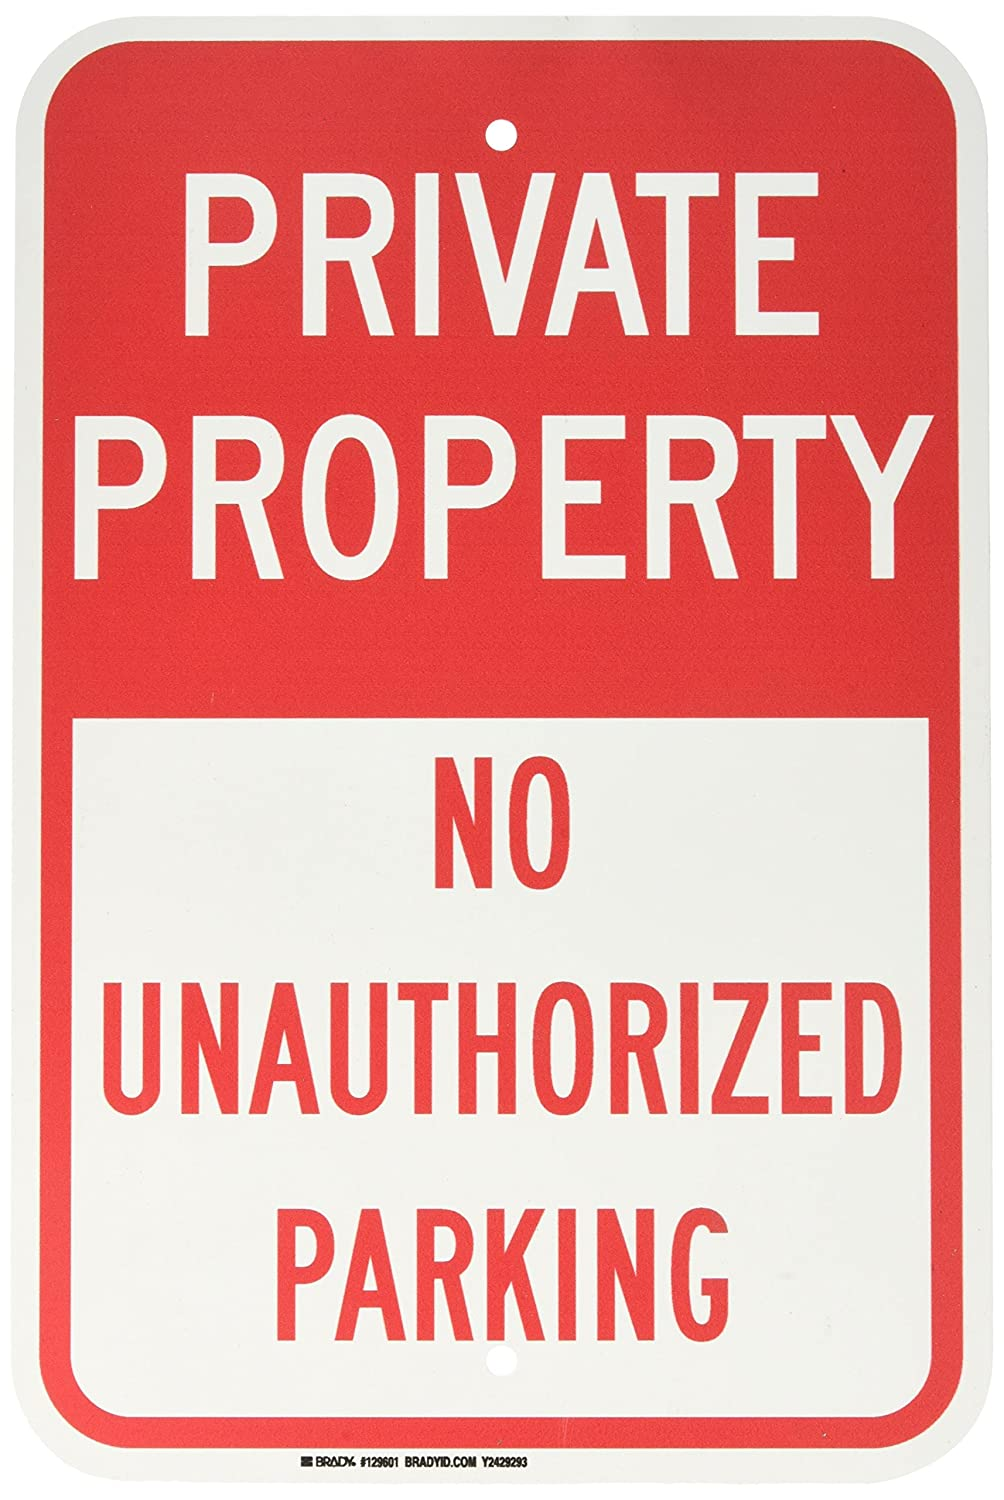 12 Width LegendPrivate Property No Unauthorized Parking 18 Height Red on White Brady 129601 Traffic Control Sign